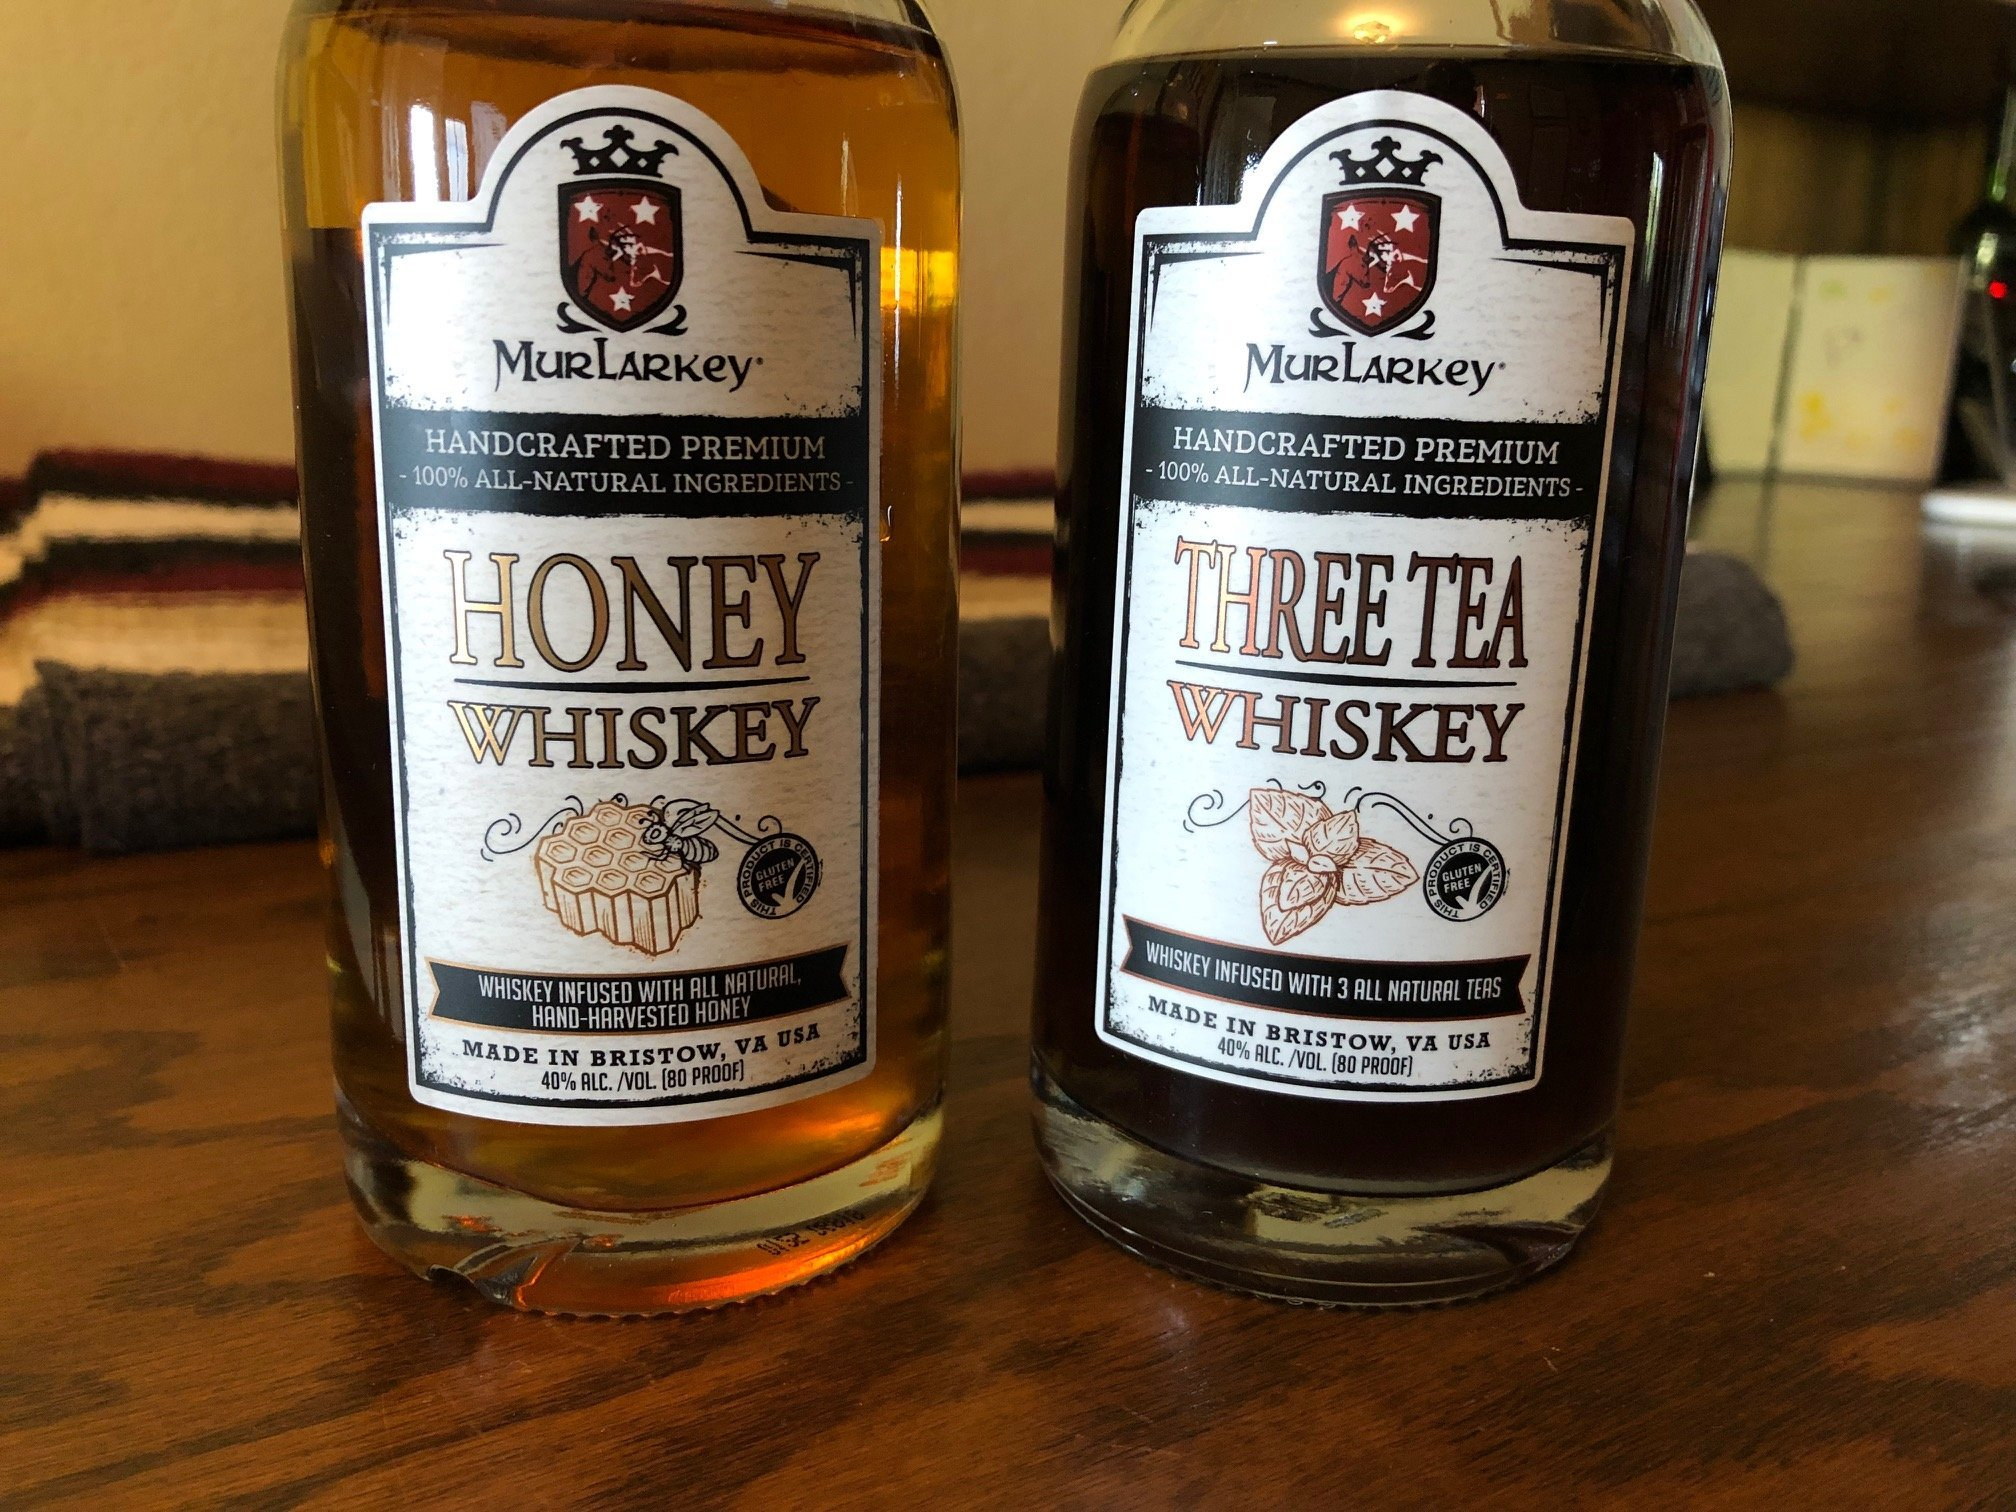 MurLarkey Three Tea Whiskey